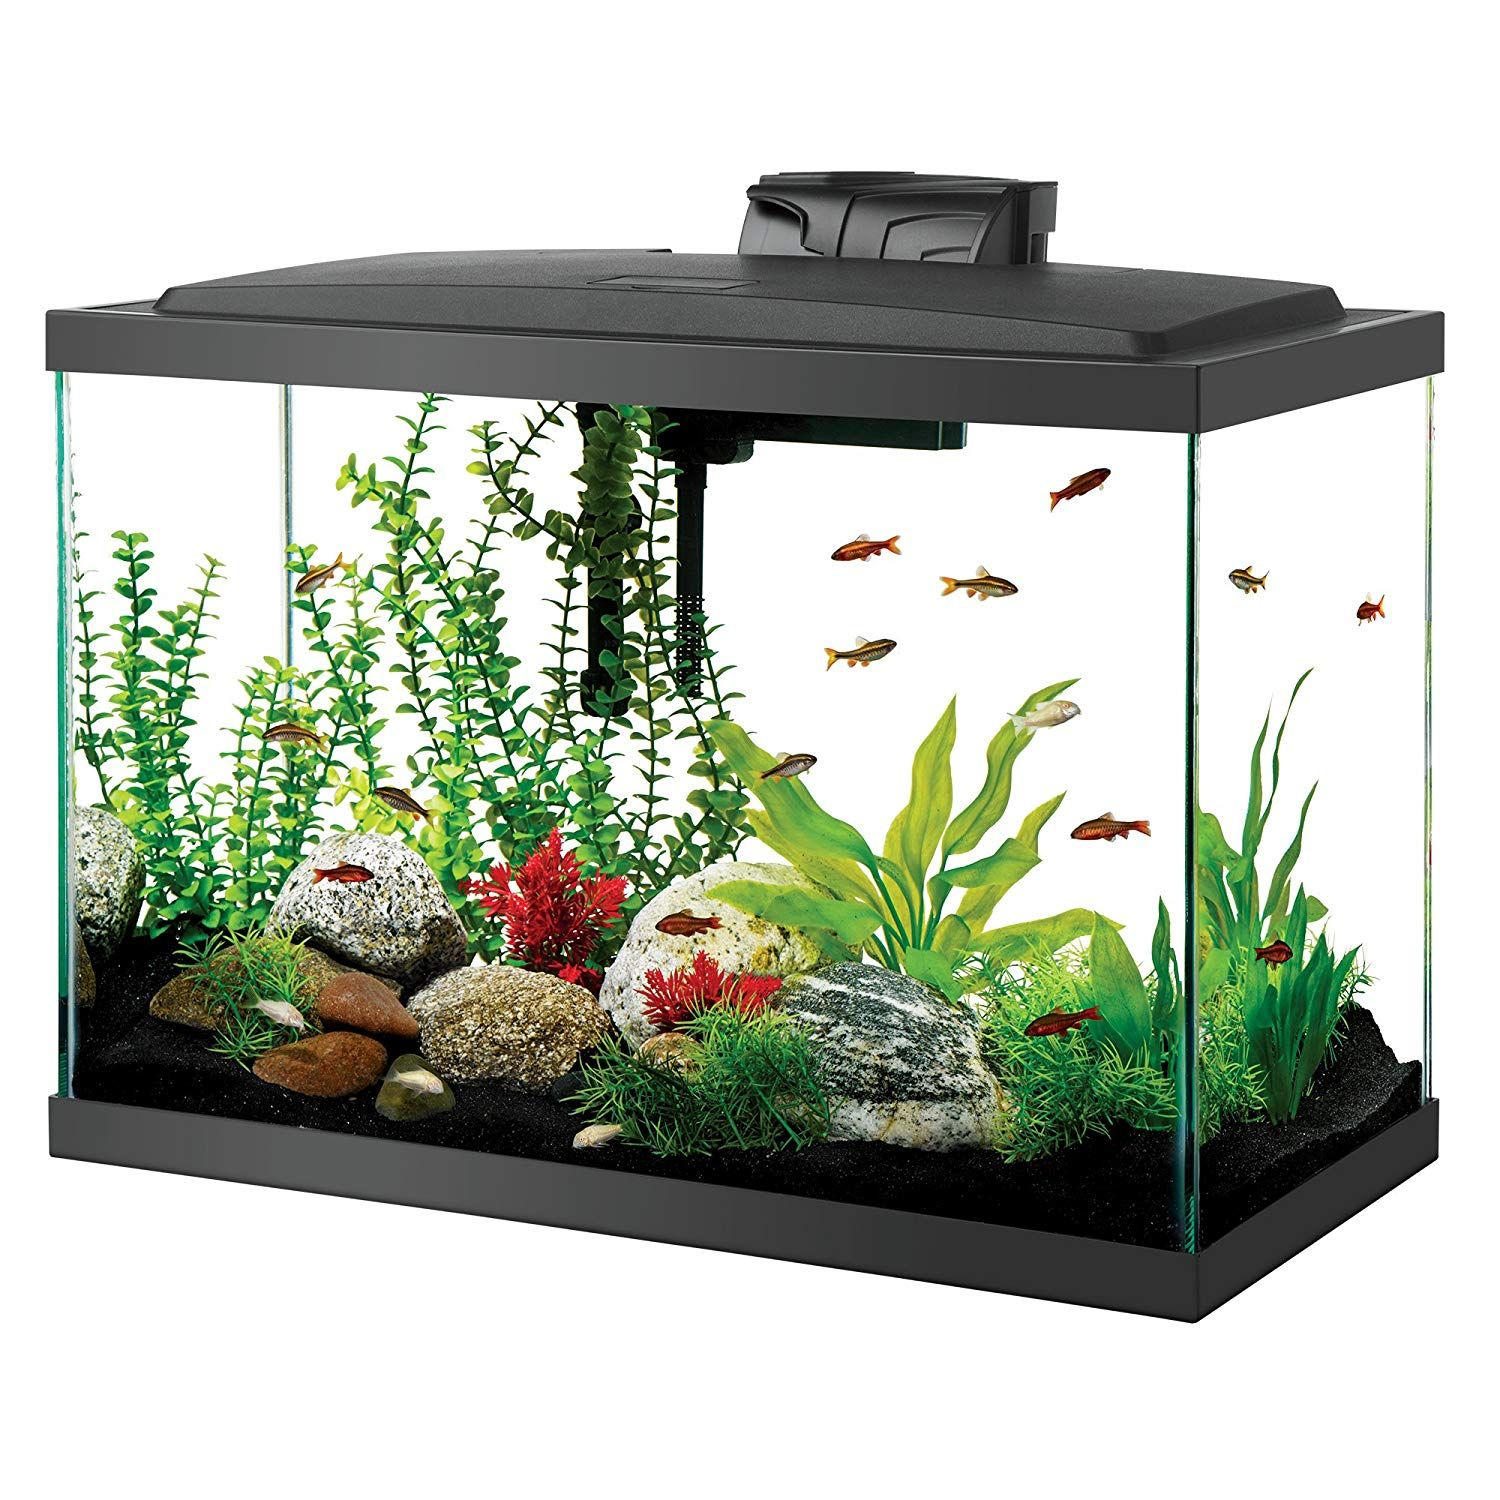 Salt Water Aquarium Set Up Low Profile Full Hood Contains Vibrant Cool White Led Lighting To Bring Your Aquatic Envir Aquarium Kit Aquarium Fish Tank Fish Tank